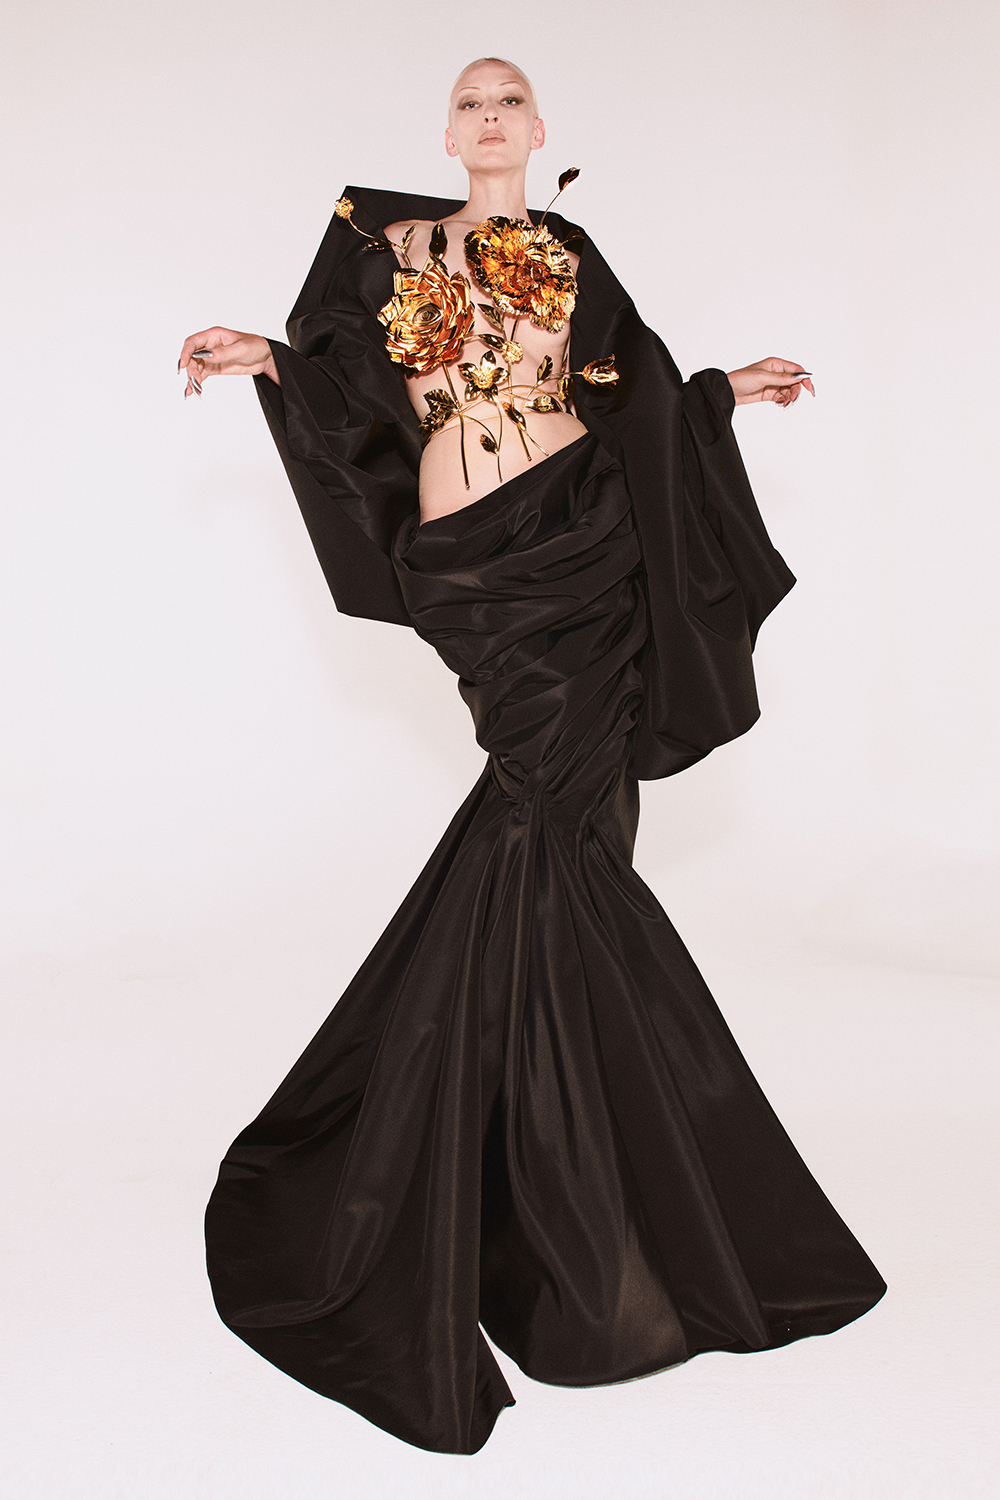 Schiaparelli Fall 2021 Couture Collection by Daniel Roseberry I DreaminLace.com #fashionstyle #couture #womensfashion